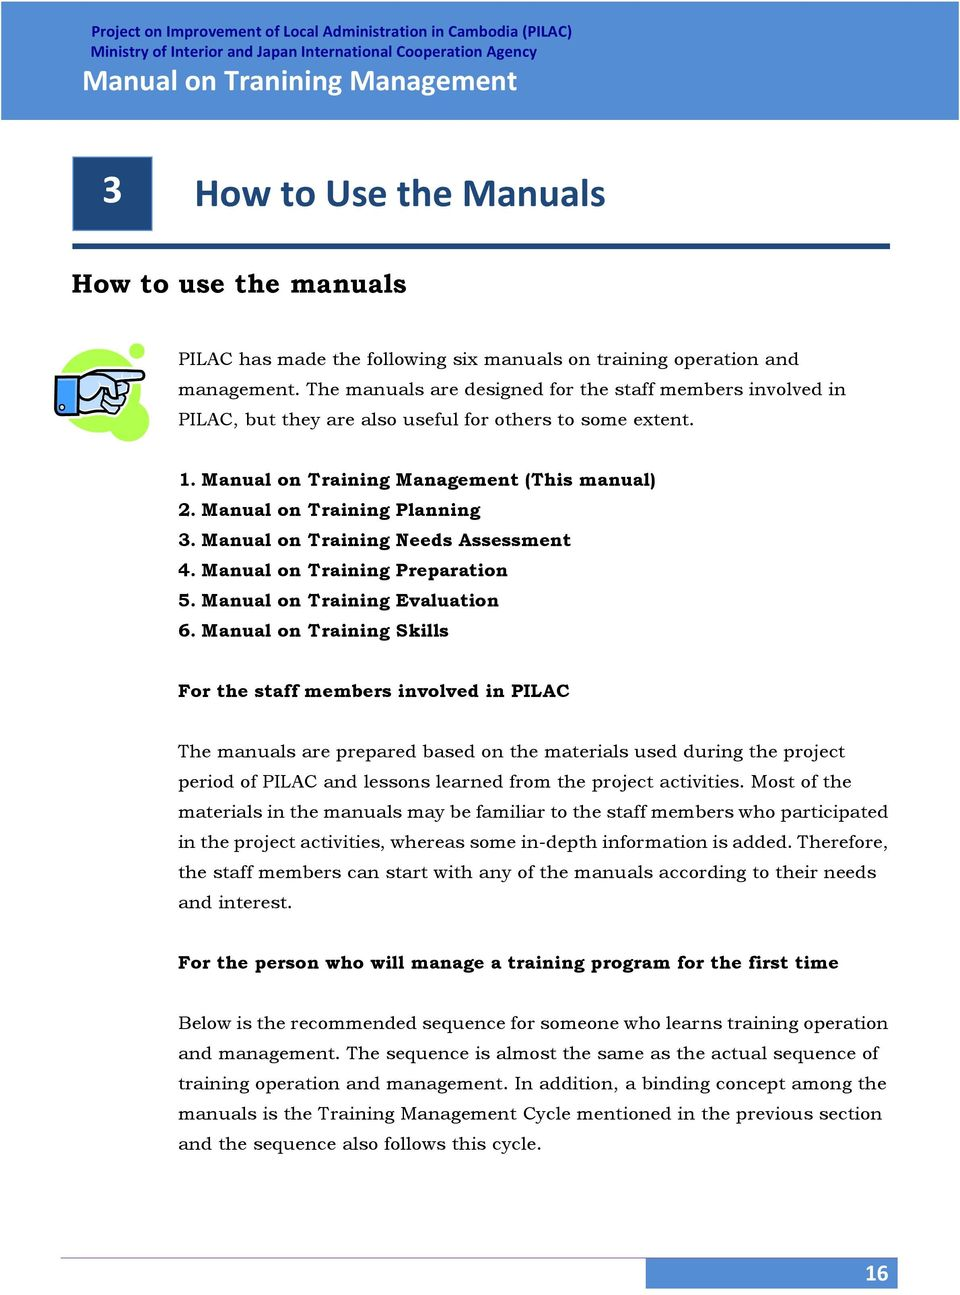 Manual on Training Needs Assessment 4. Manual on Training Preparation 5. Manual on Training Evaluation 6.